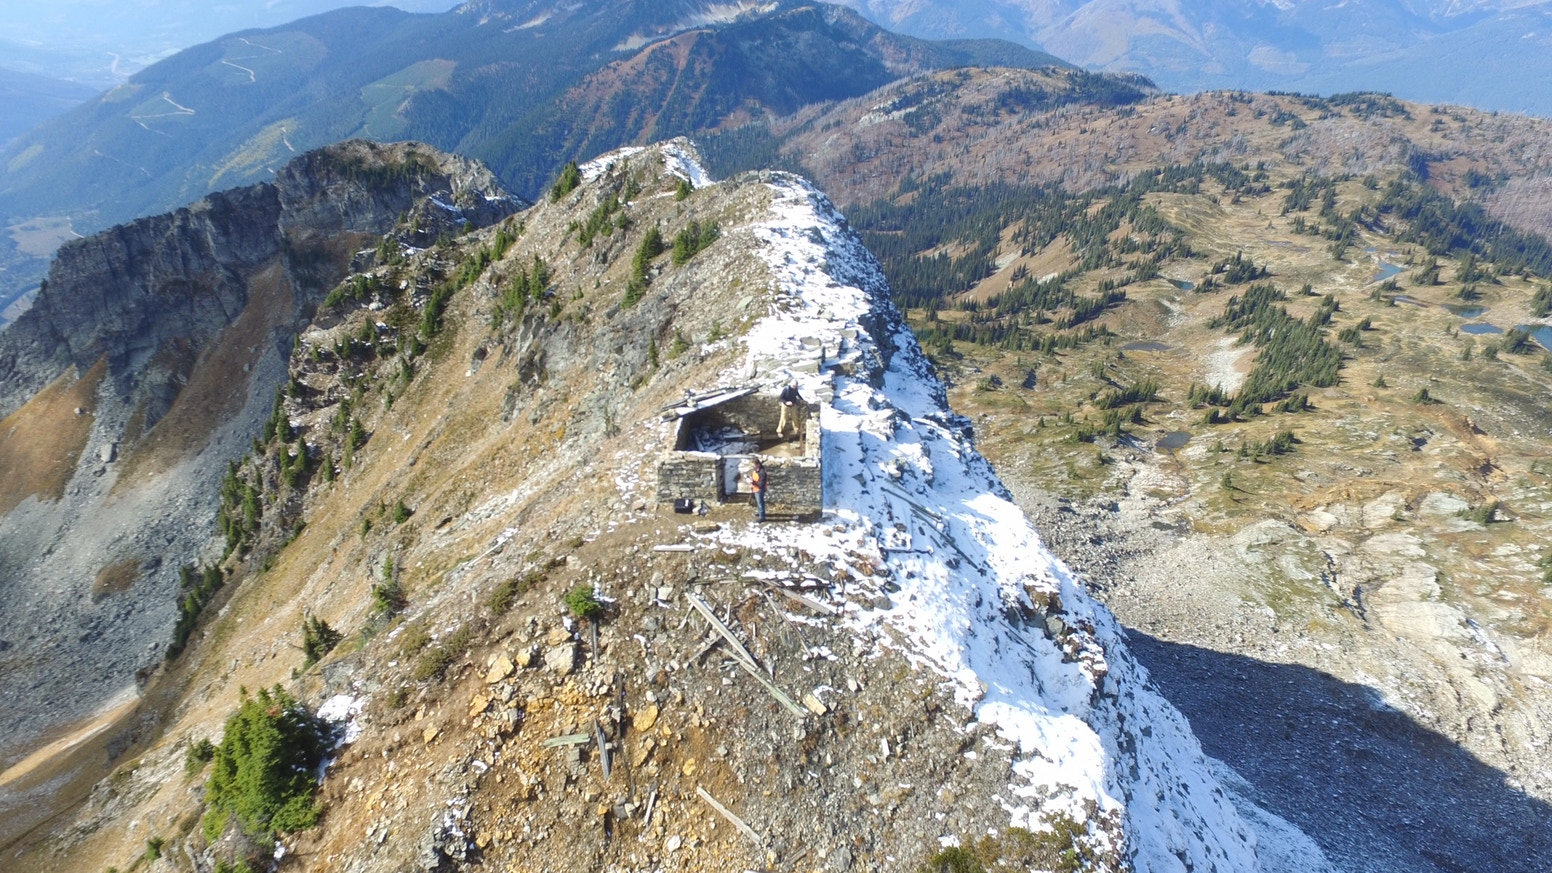 Centro Assistenza Majestic.Bringing Life Back To The Majestic Eaglepass Lookout Shelter